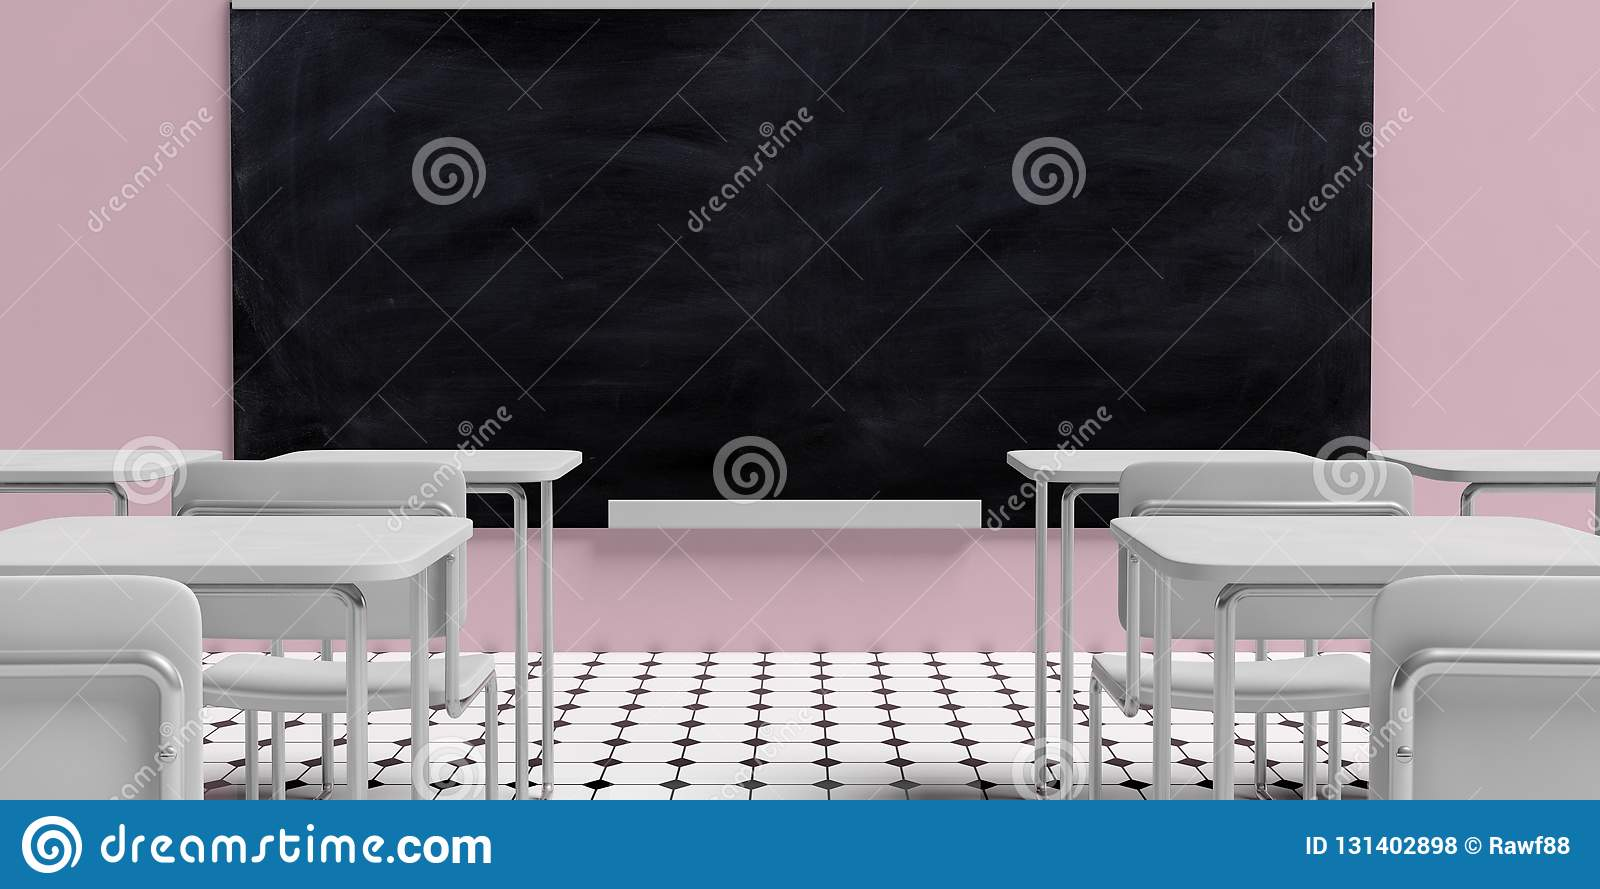 Education concept. Blackboard in empty classroom with white desks, against pink wall background and black and white octagon tiles